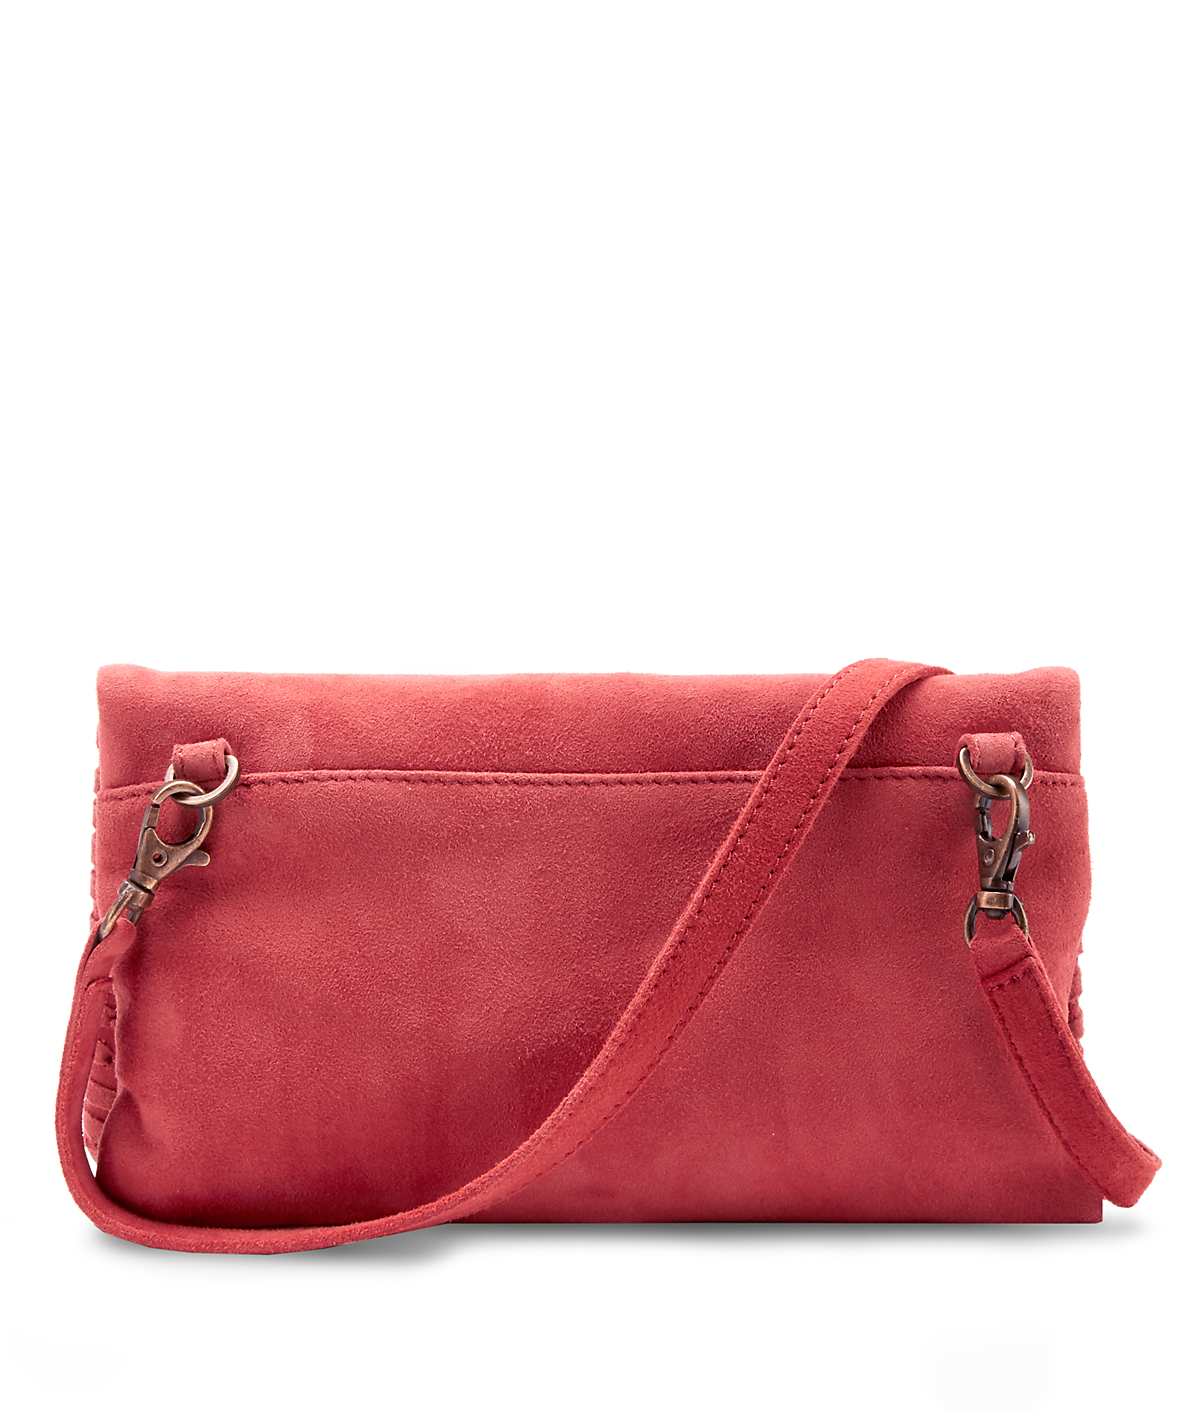 Lavina cross-body bag from liebeskind